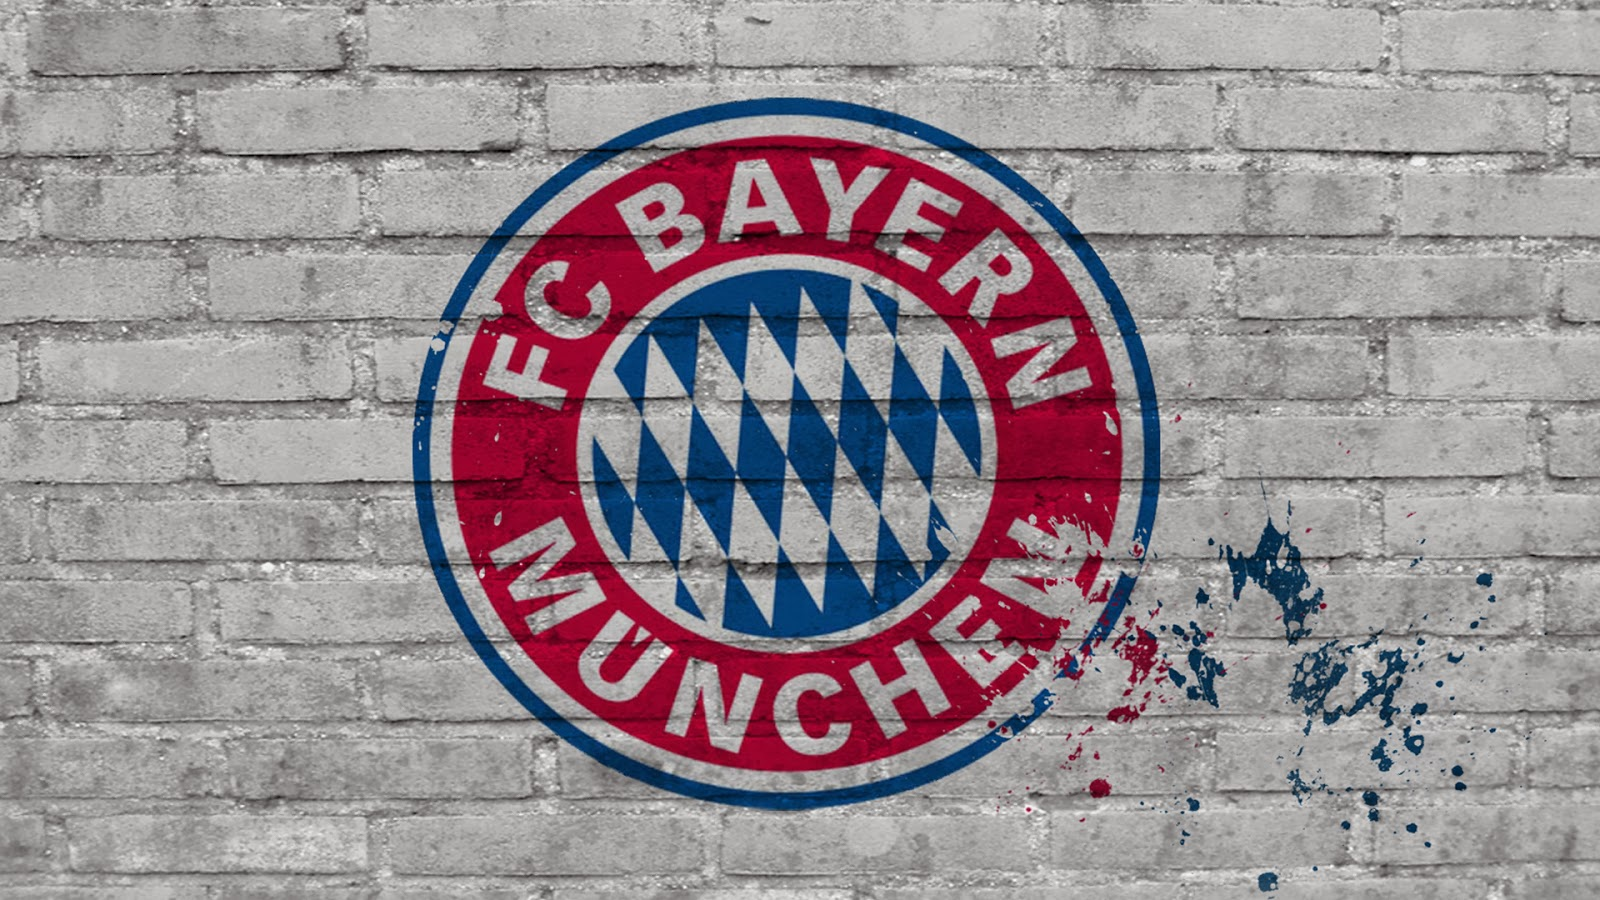 bayern munich fc wallpapers wallpapers. Black Bedroom Furniture Sets. Home Design Ideas